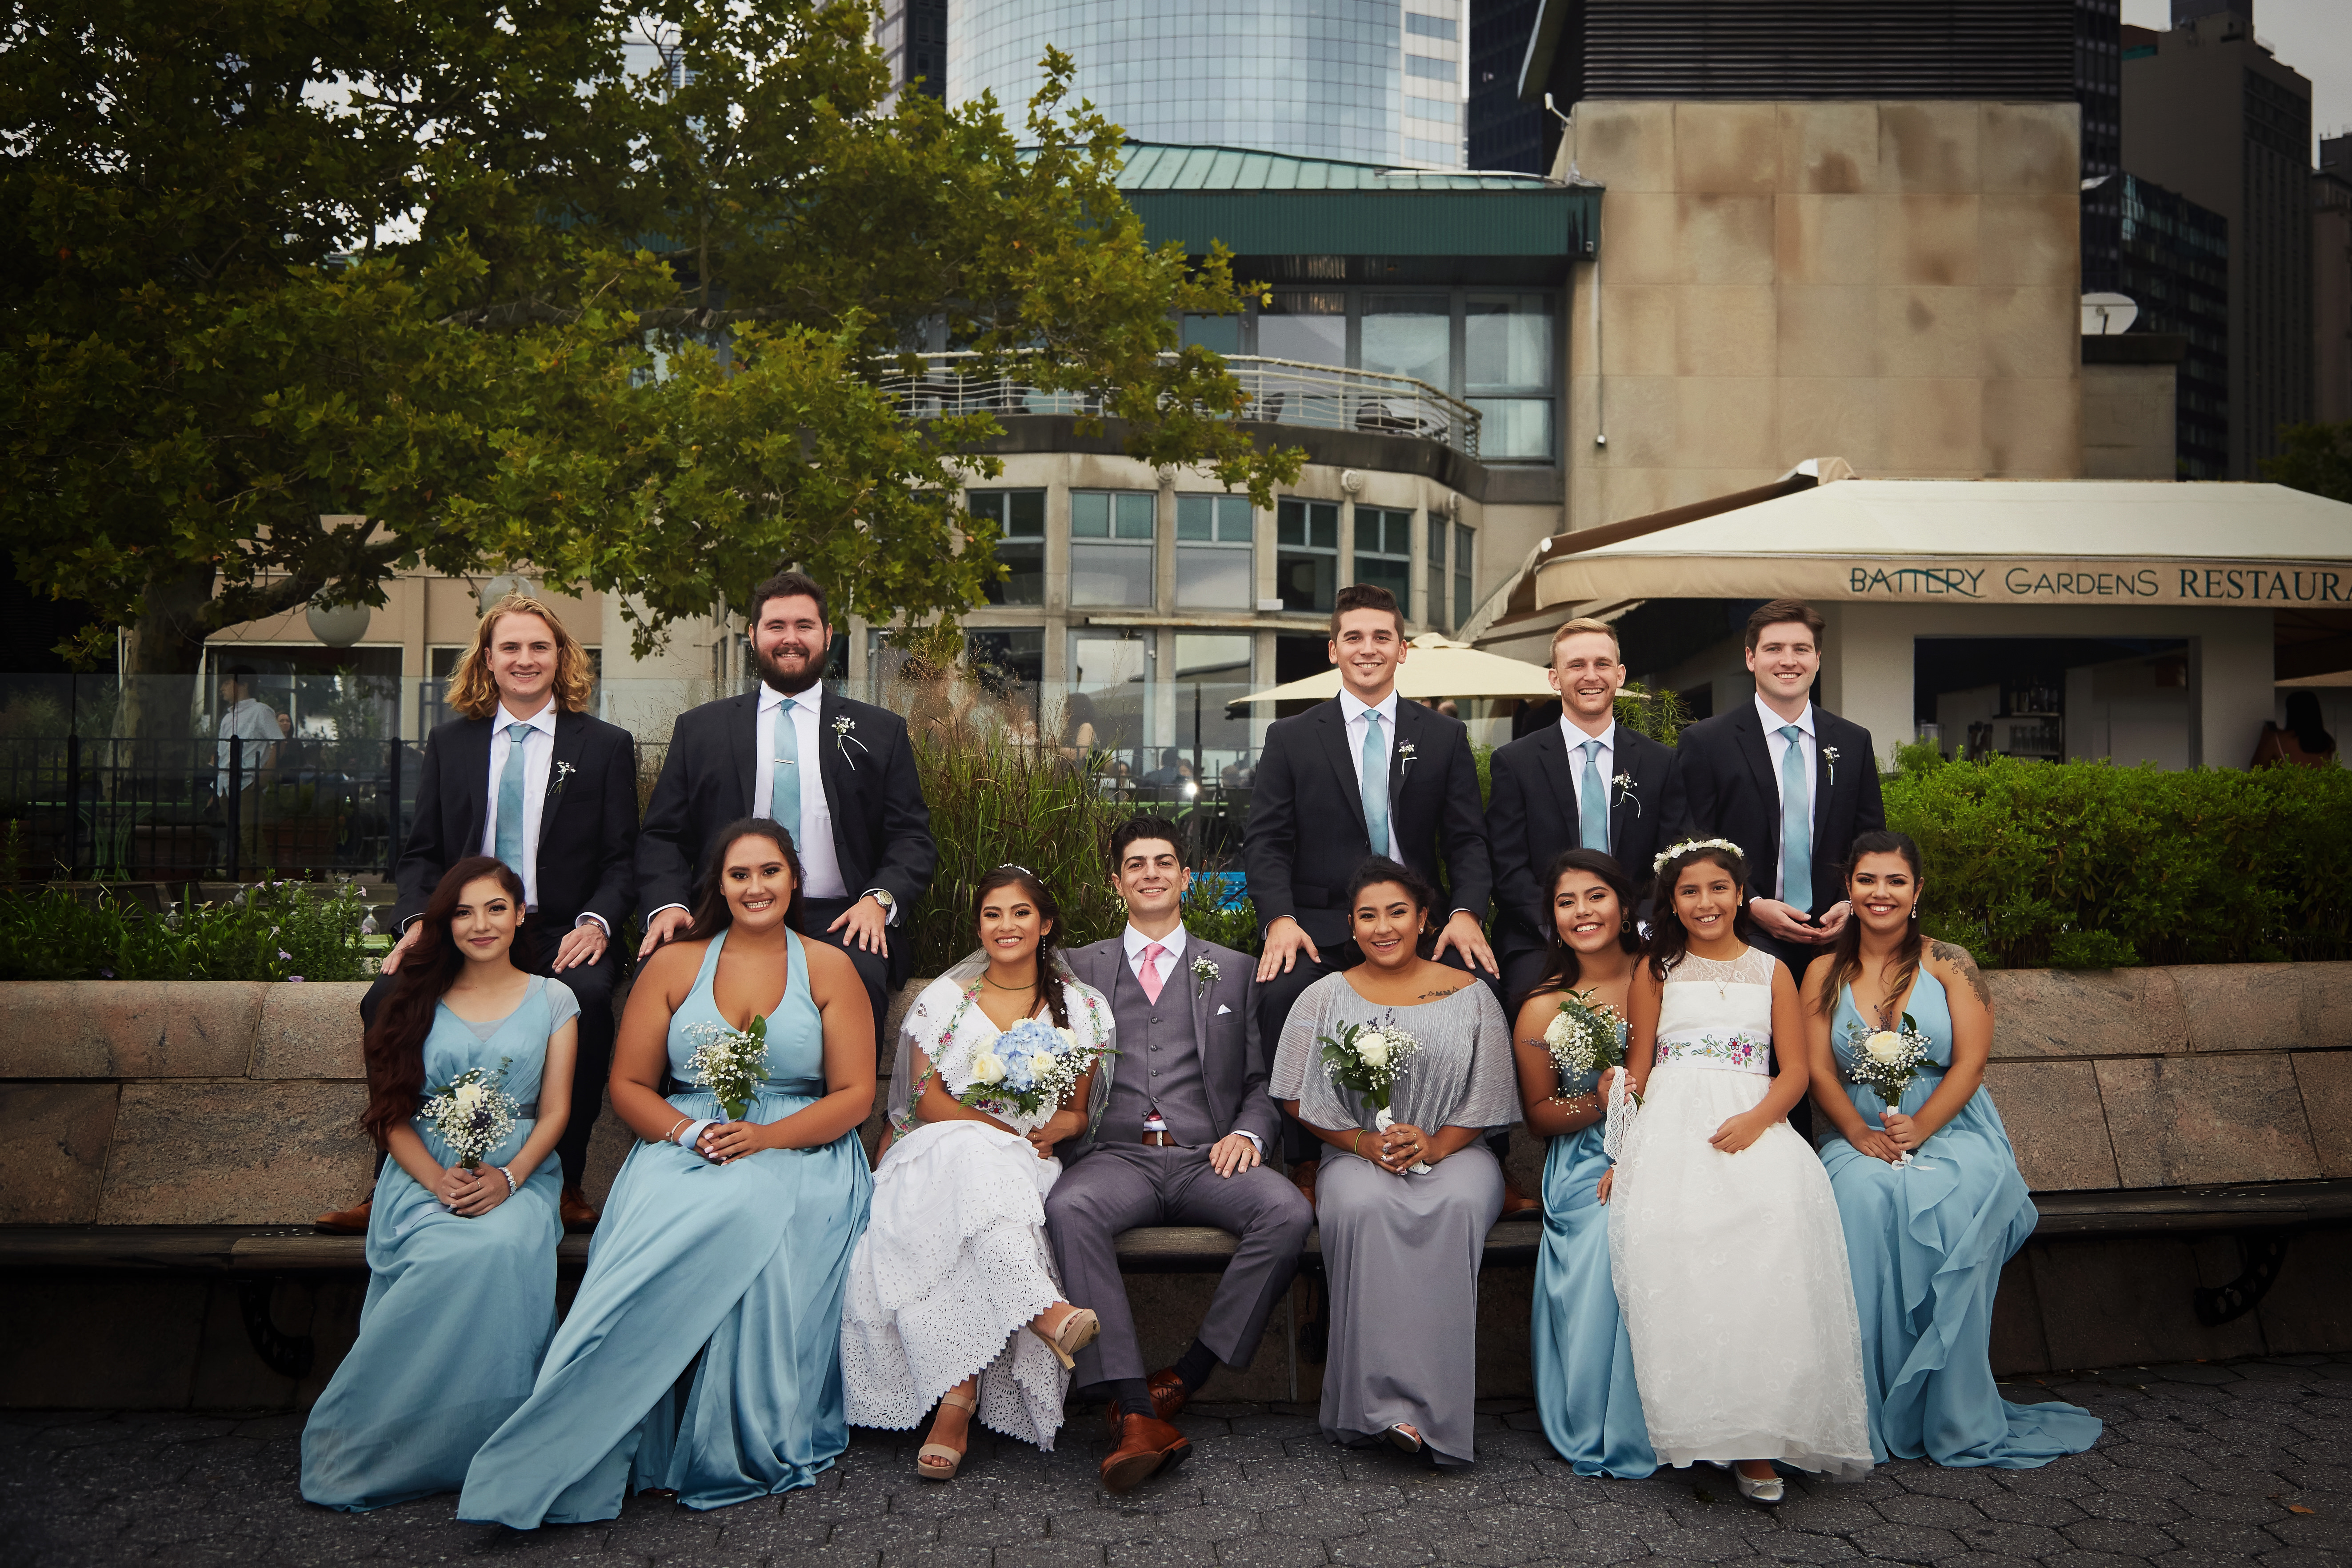 Wedding Photography in Battery Gardens in New York City New York